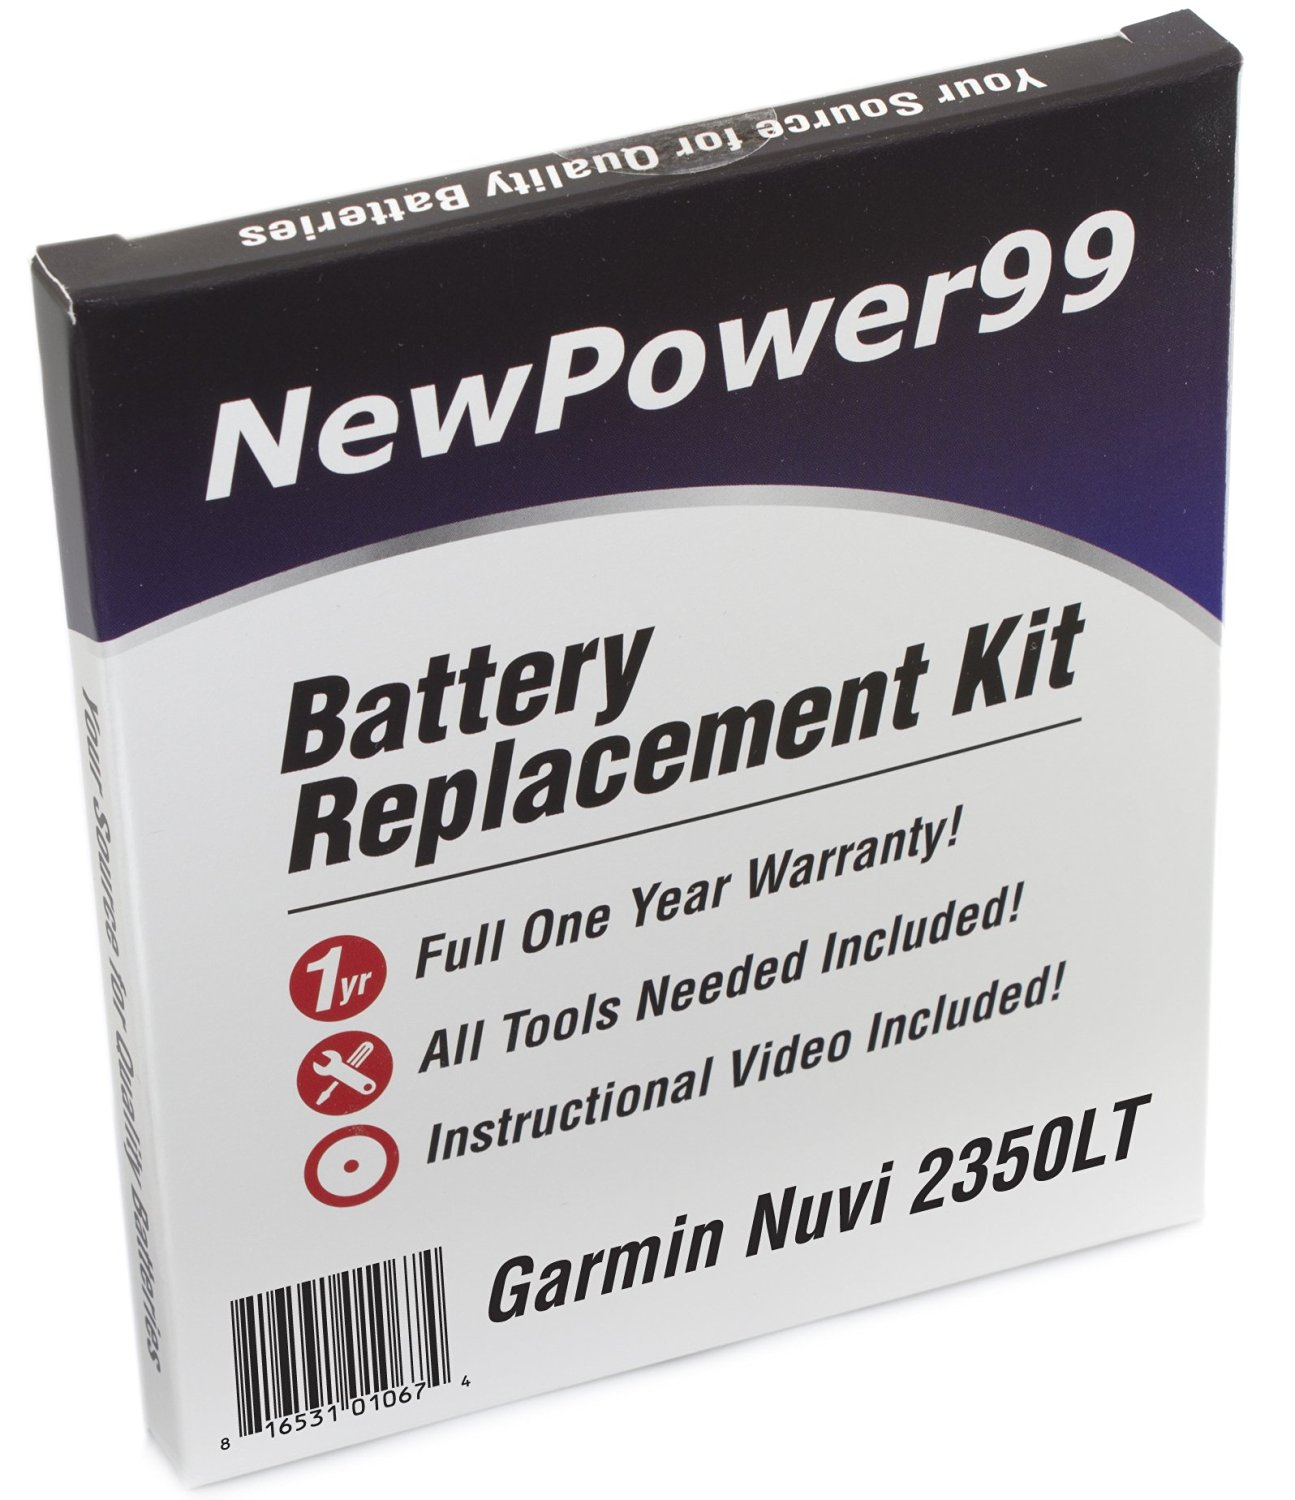 Garmin Nuvi 2350LT Battery Replacement Kit with Installation Video, Tools, and Extended Life Battery.